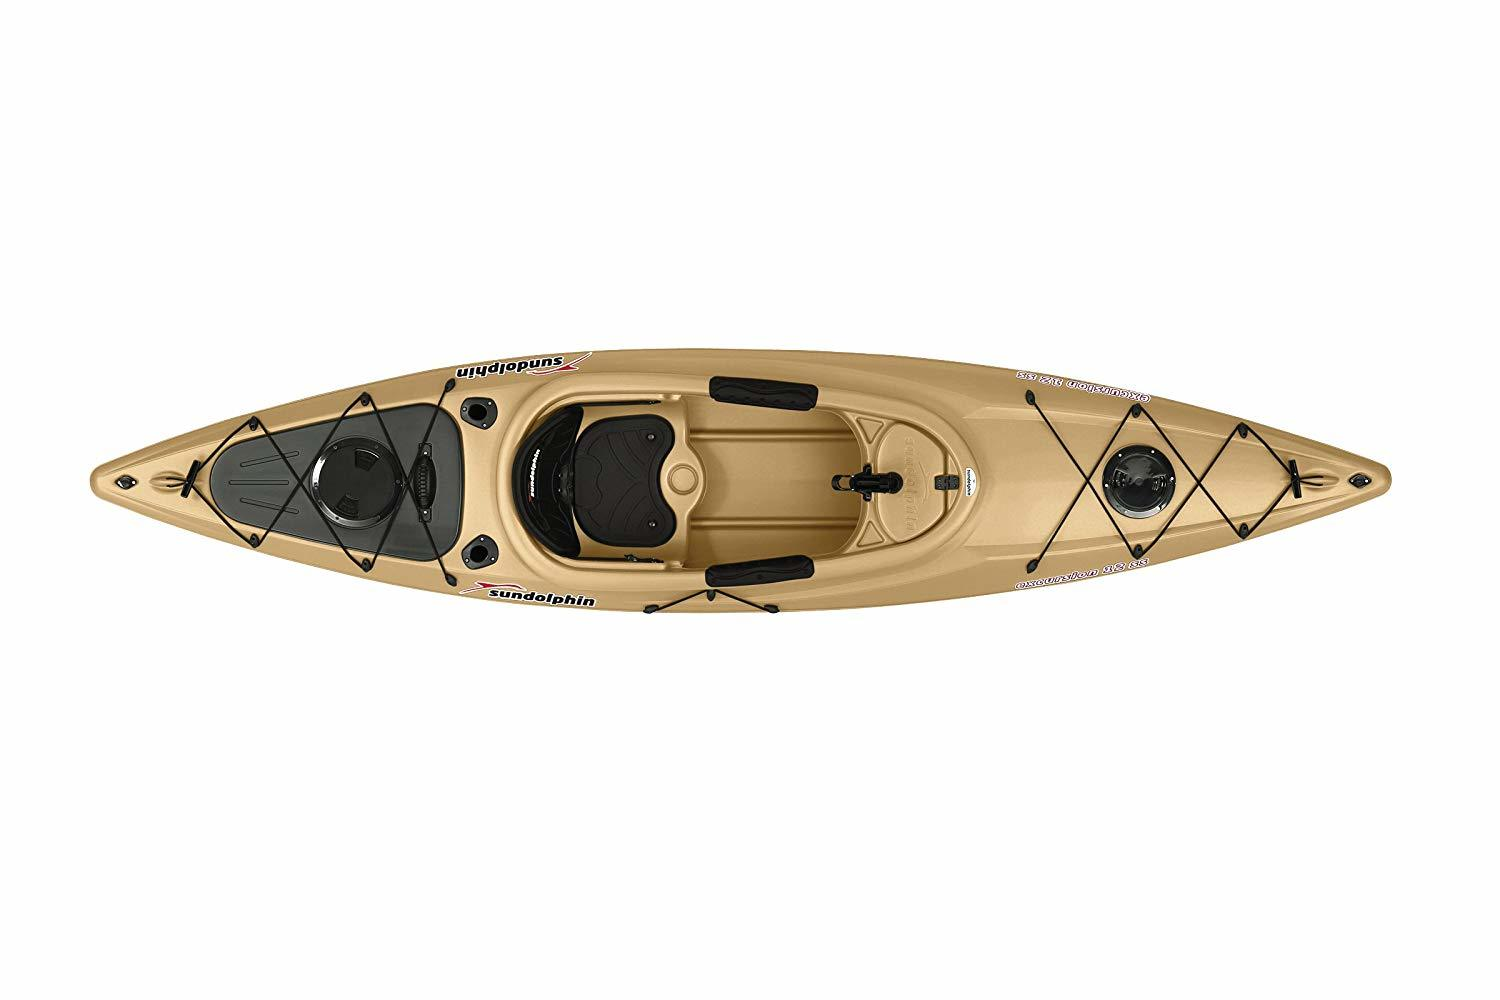 Sun dolphon Excursion Kayak